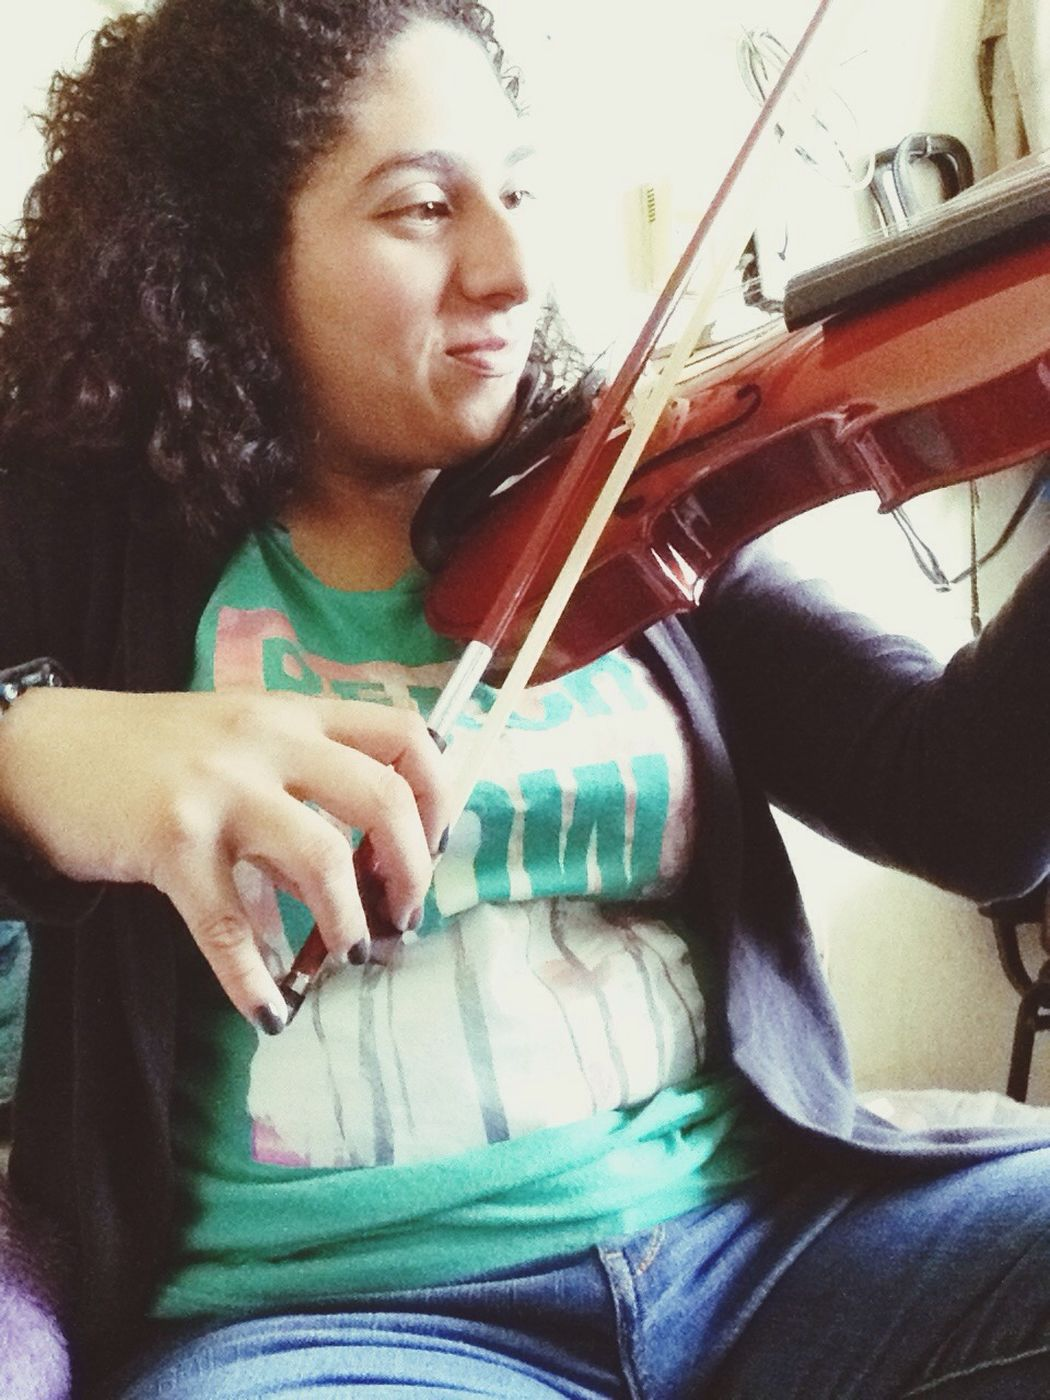 My one and true love is called Niccolo 🎻 Kali8a Violinistinprogress